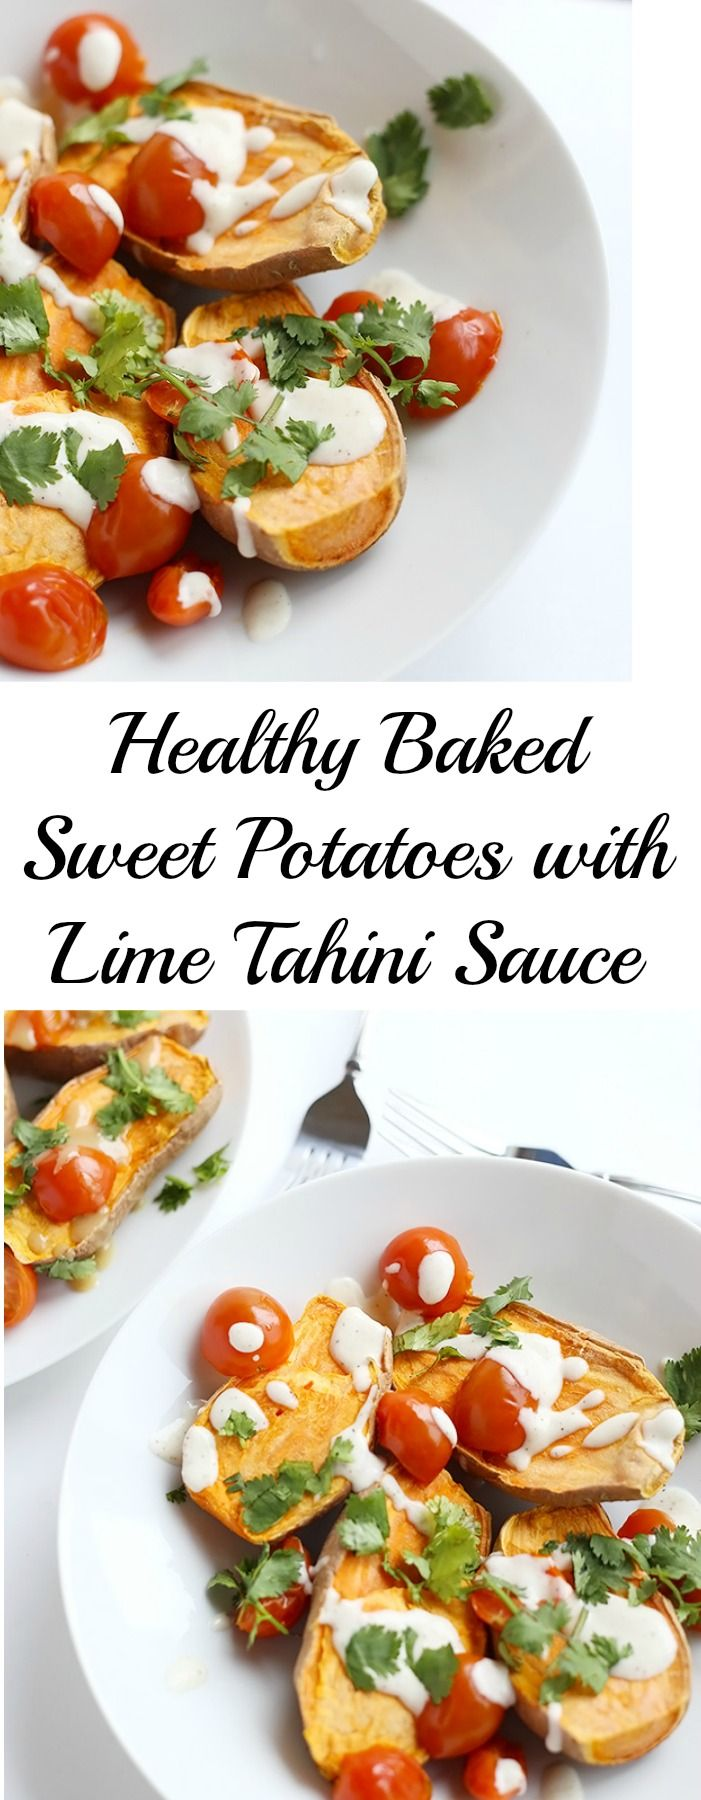 These Healthy Baked Sweet Potatoes with Lime Tahini Sauce are the perfect comforting dinner! Two sauce options included! Vegan and Gluten Free. / TwoRaspberries.com